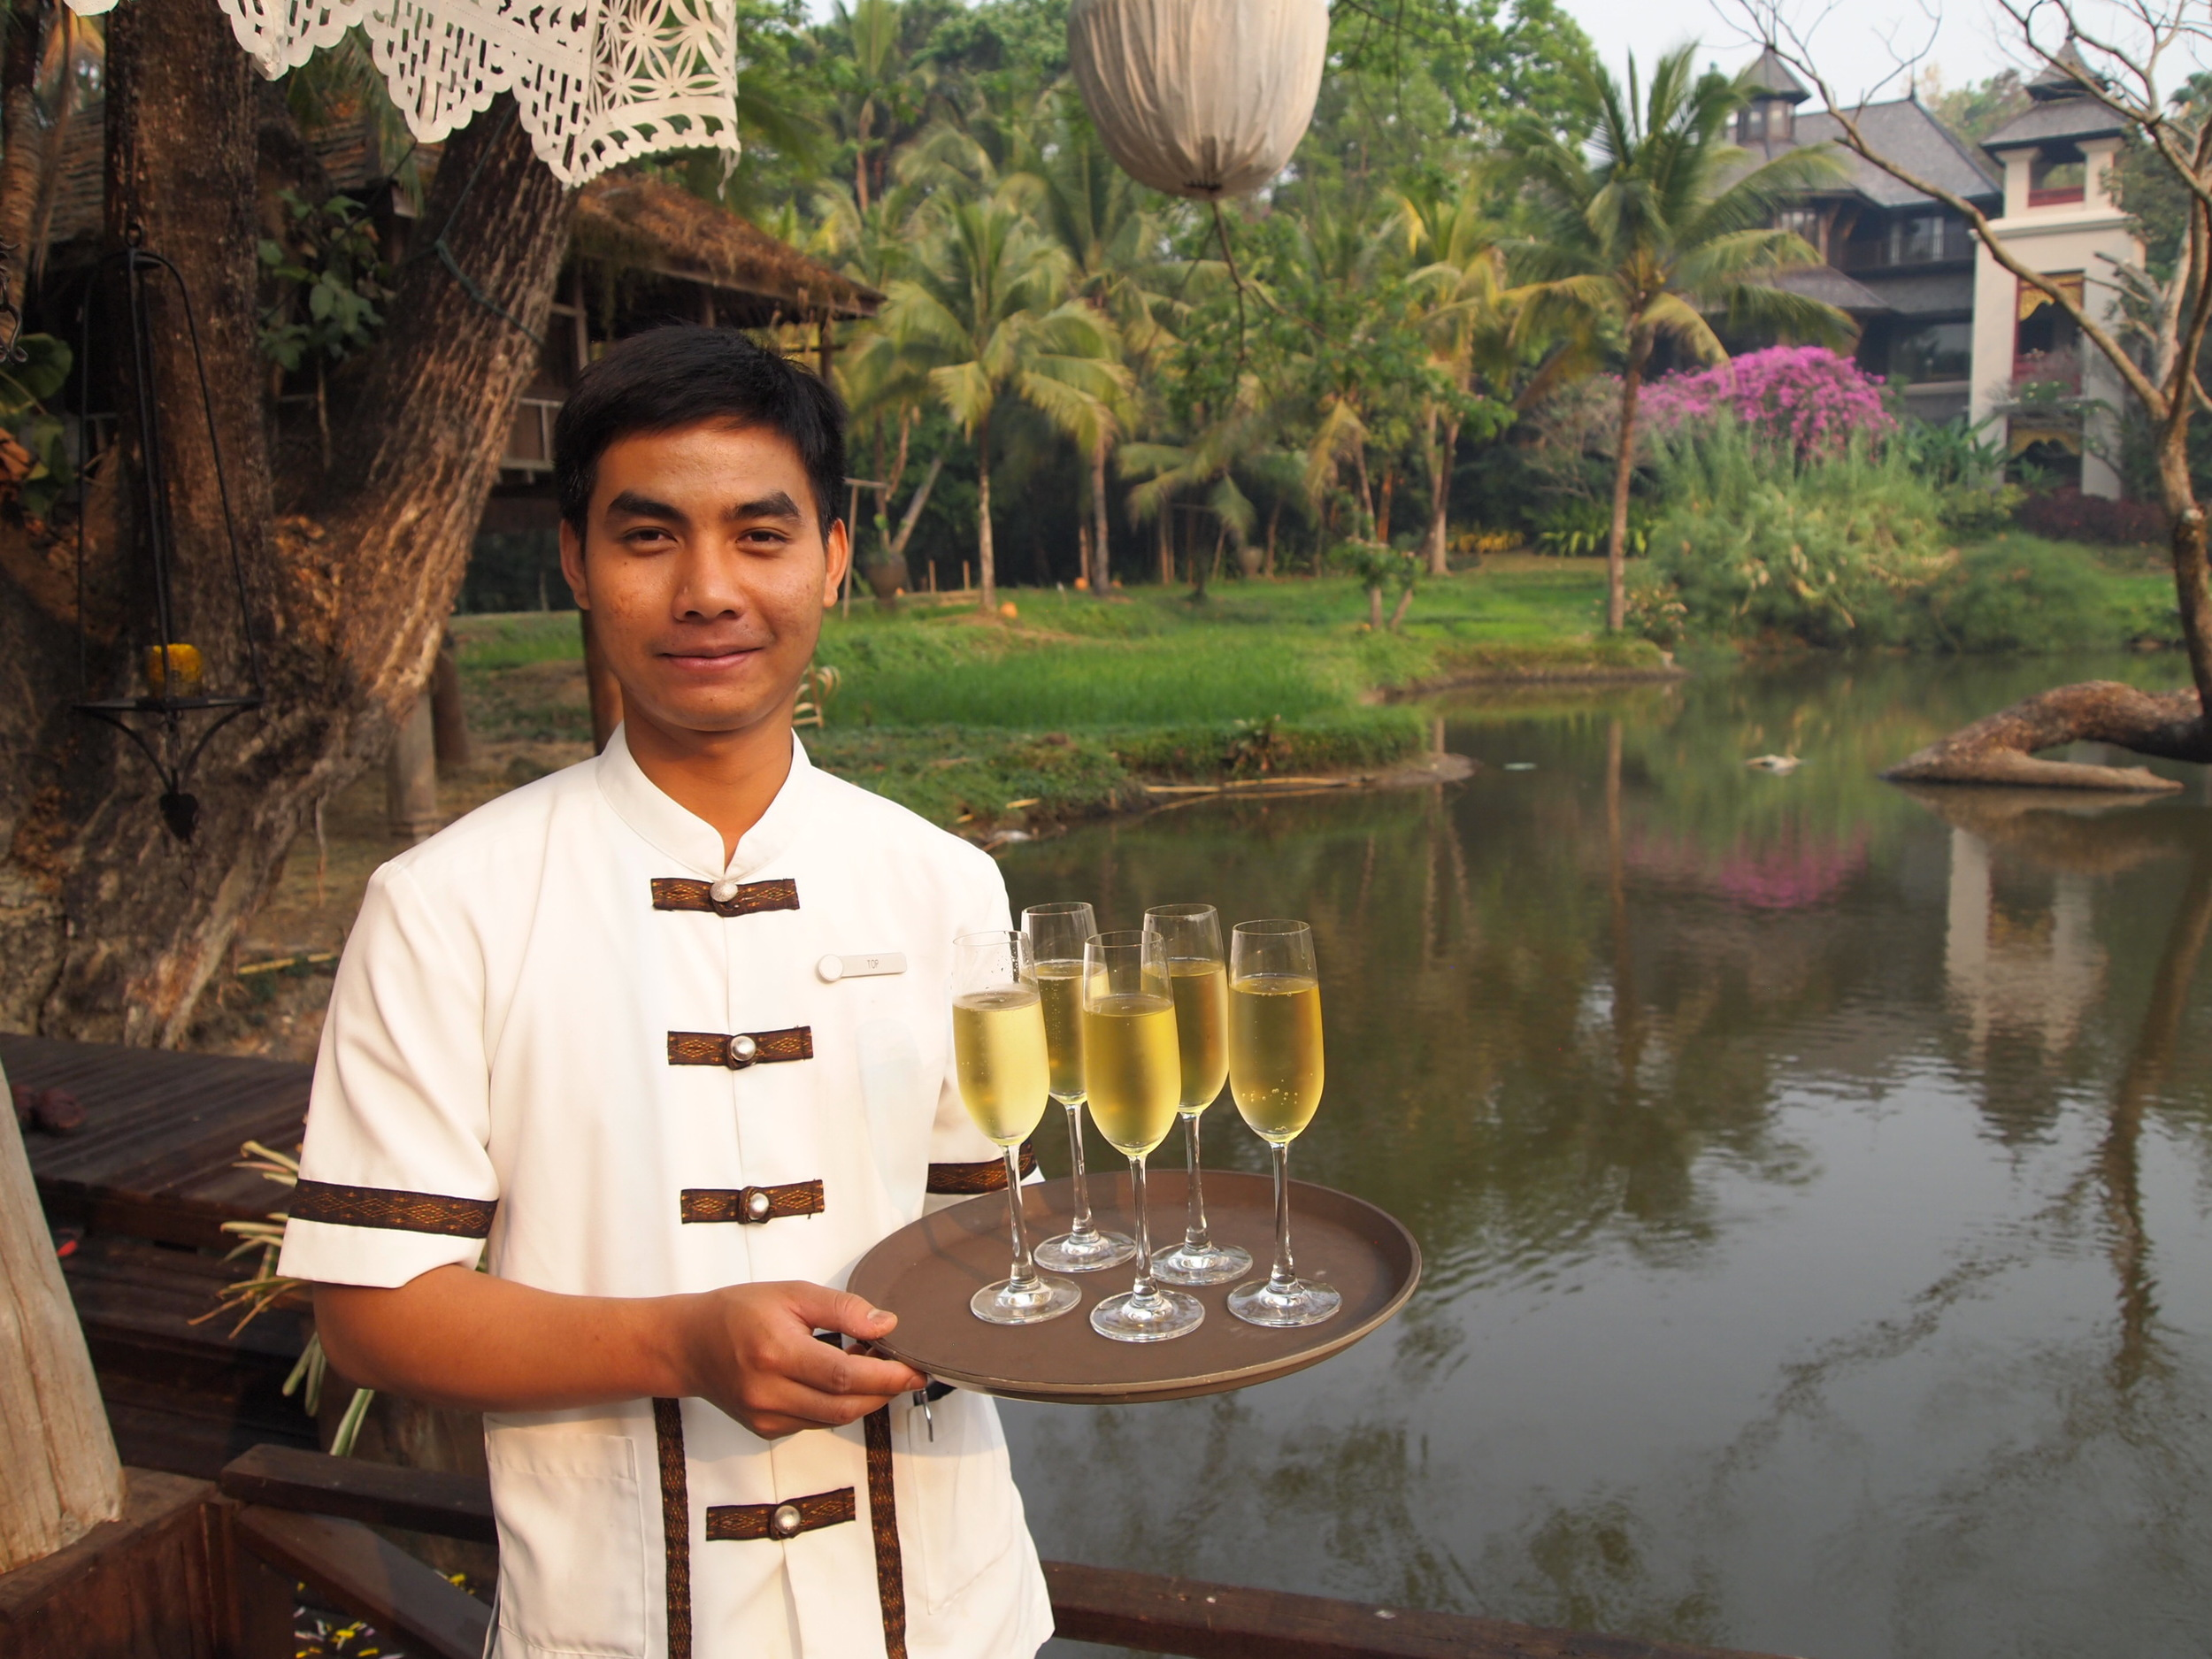 A server offering Monsoon Valley, Thailand's only locally made, beautifully flavored sparkling wine